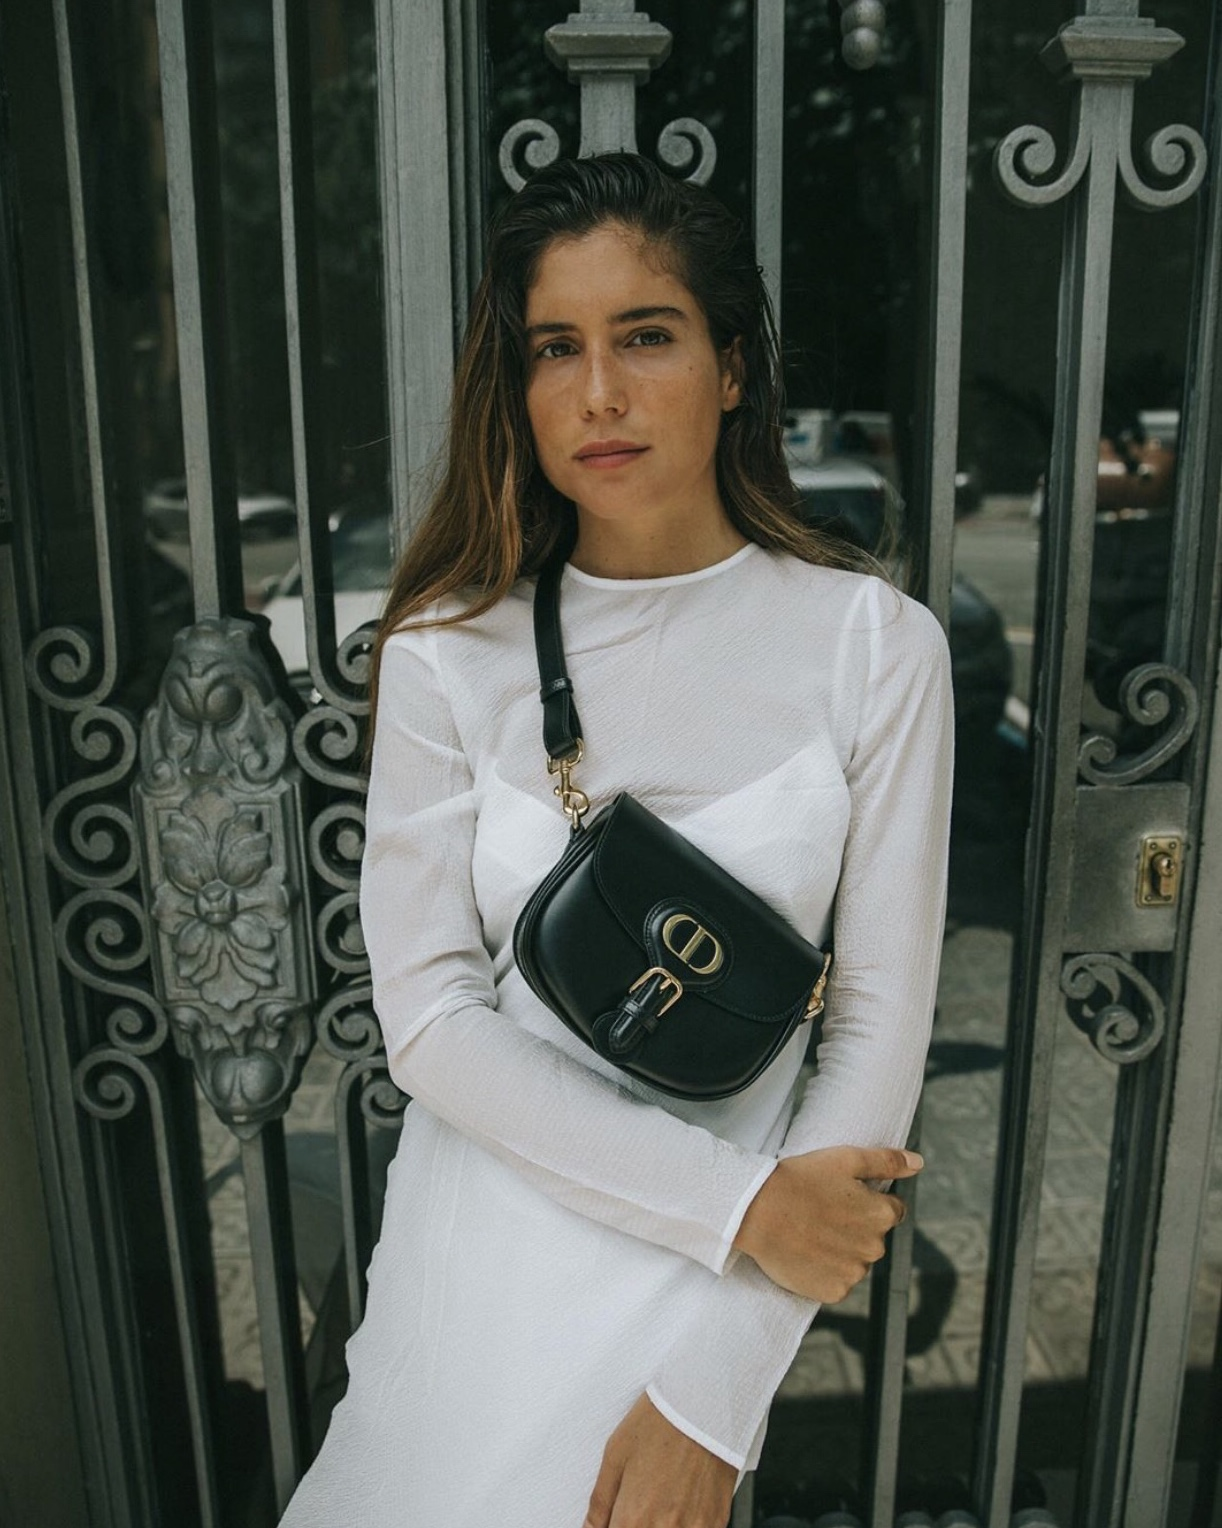 Style Inspiration | Mini Trend: The New Dior 'Bobby' Bag